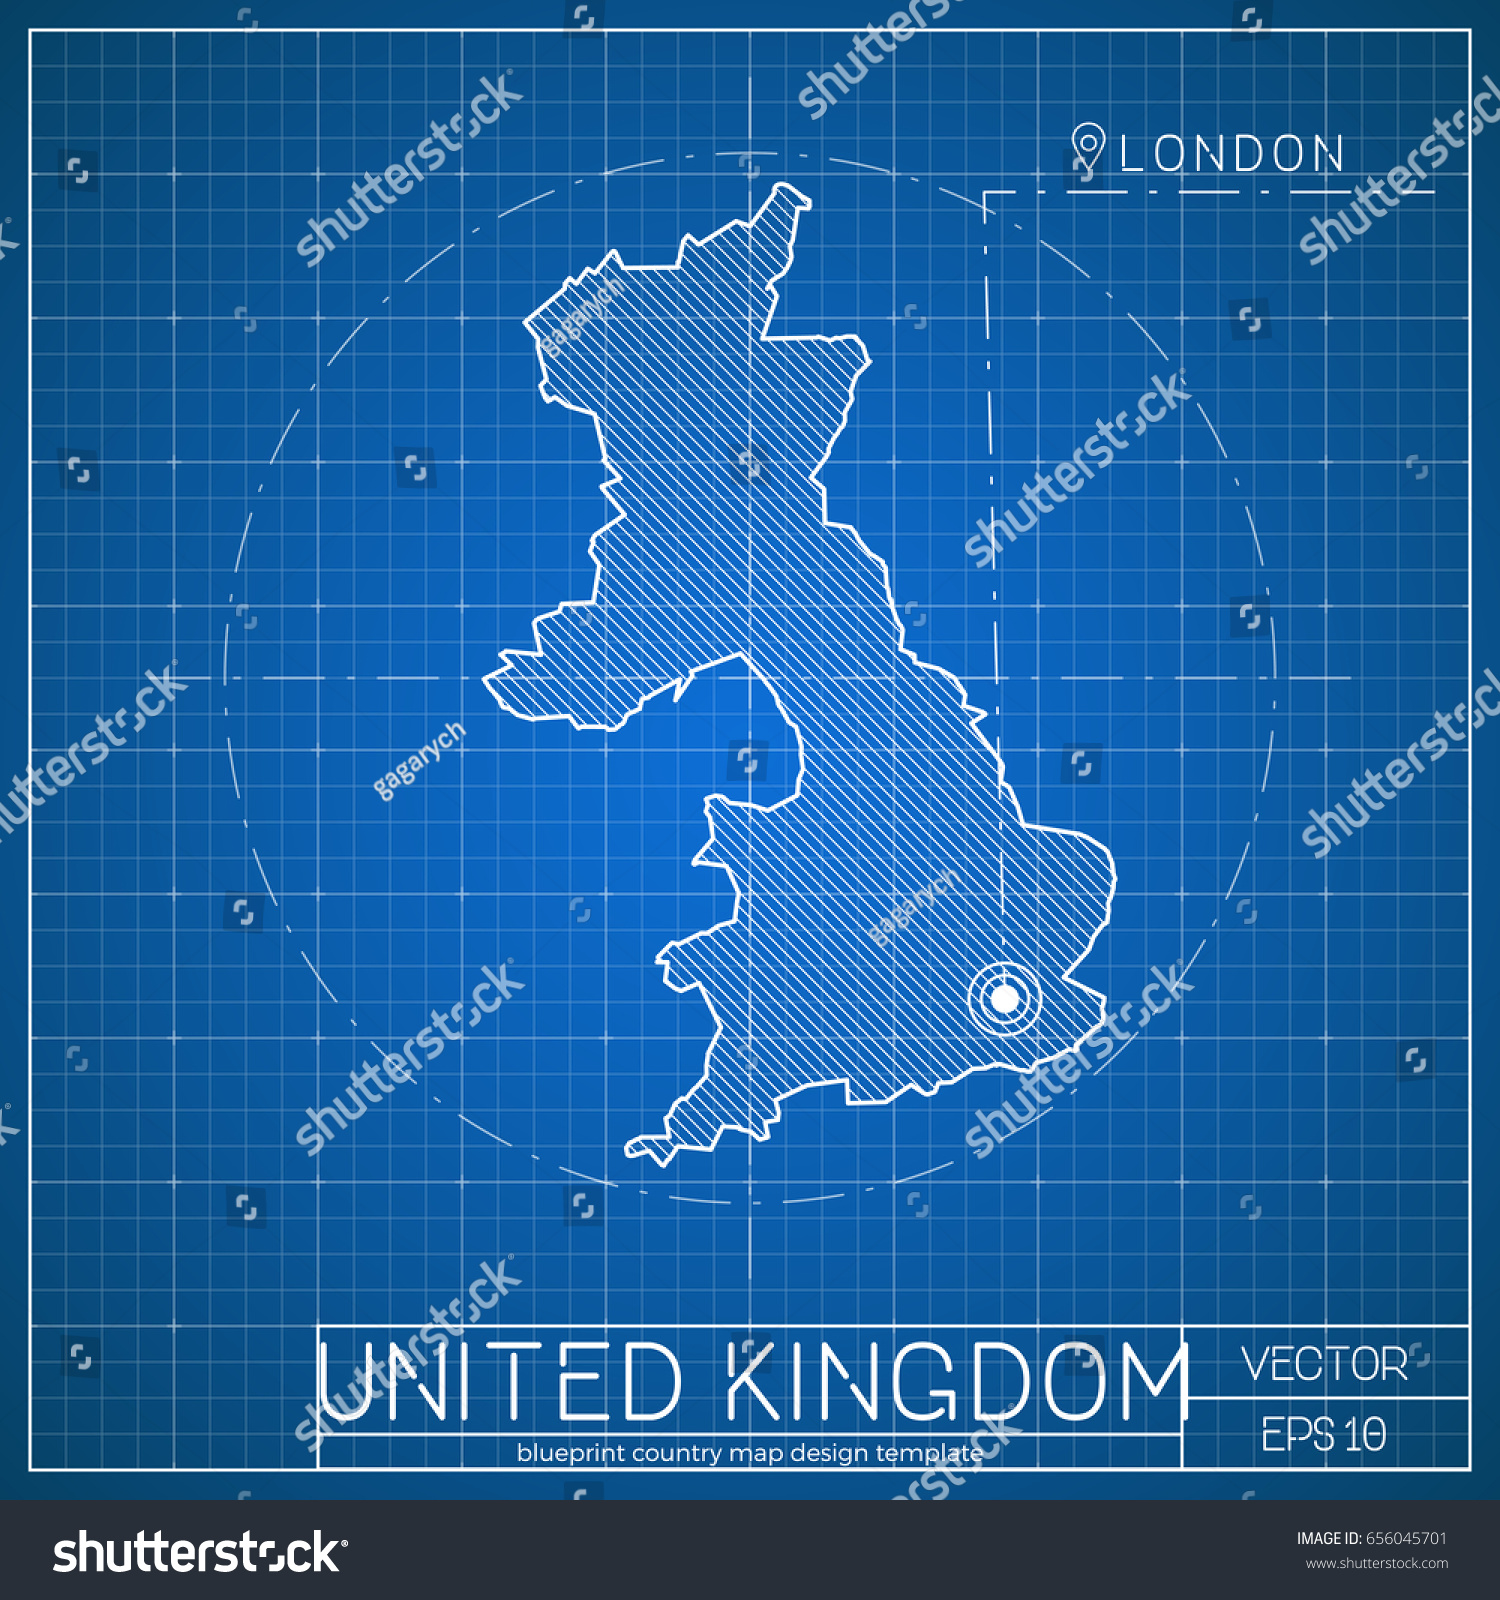 United kingdom blueprint map template capital stock vector 656045701 united kingdom blueprint map template with capital city london marked on blueprint british map malvernweather Choice Image